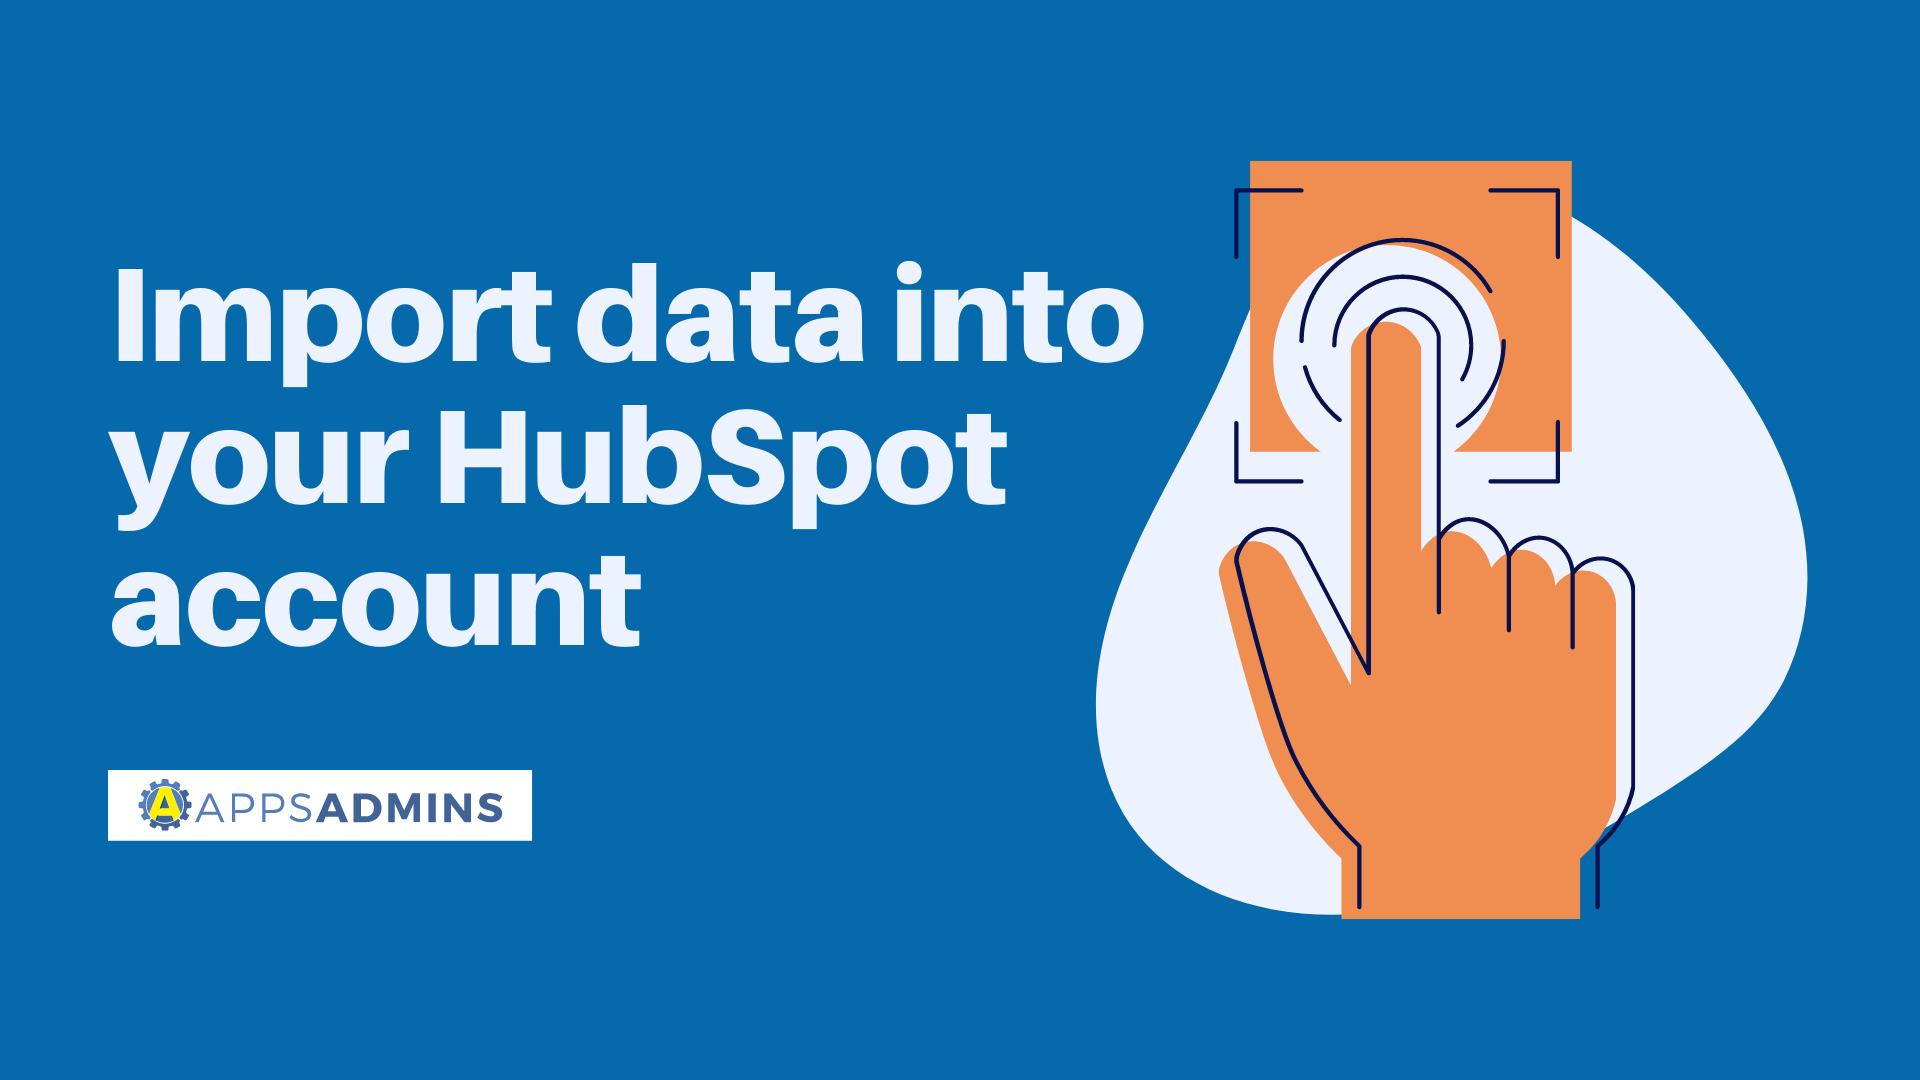 Import data into your HubSpot account